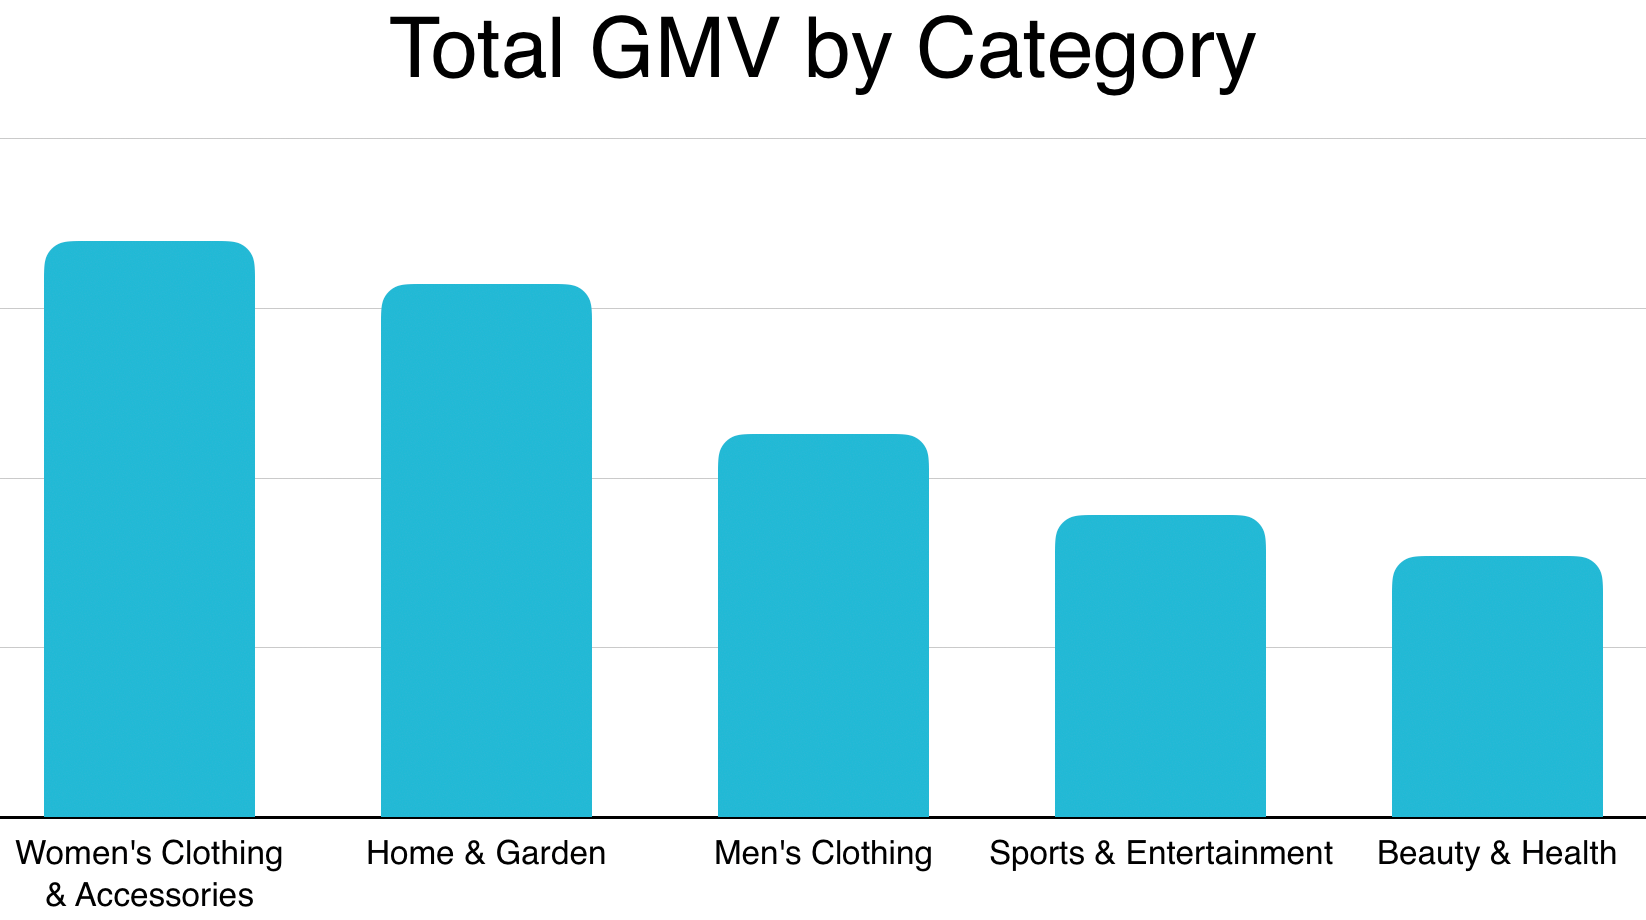 Best Selling Niche Products in 2018 by GMV